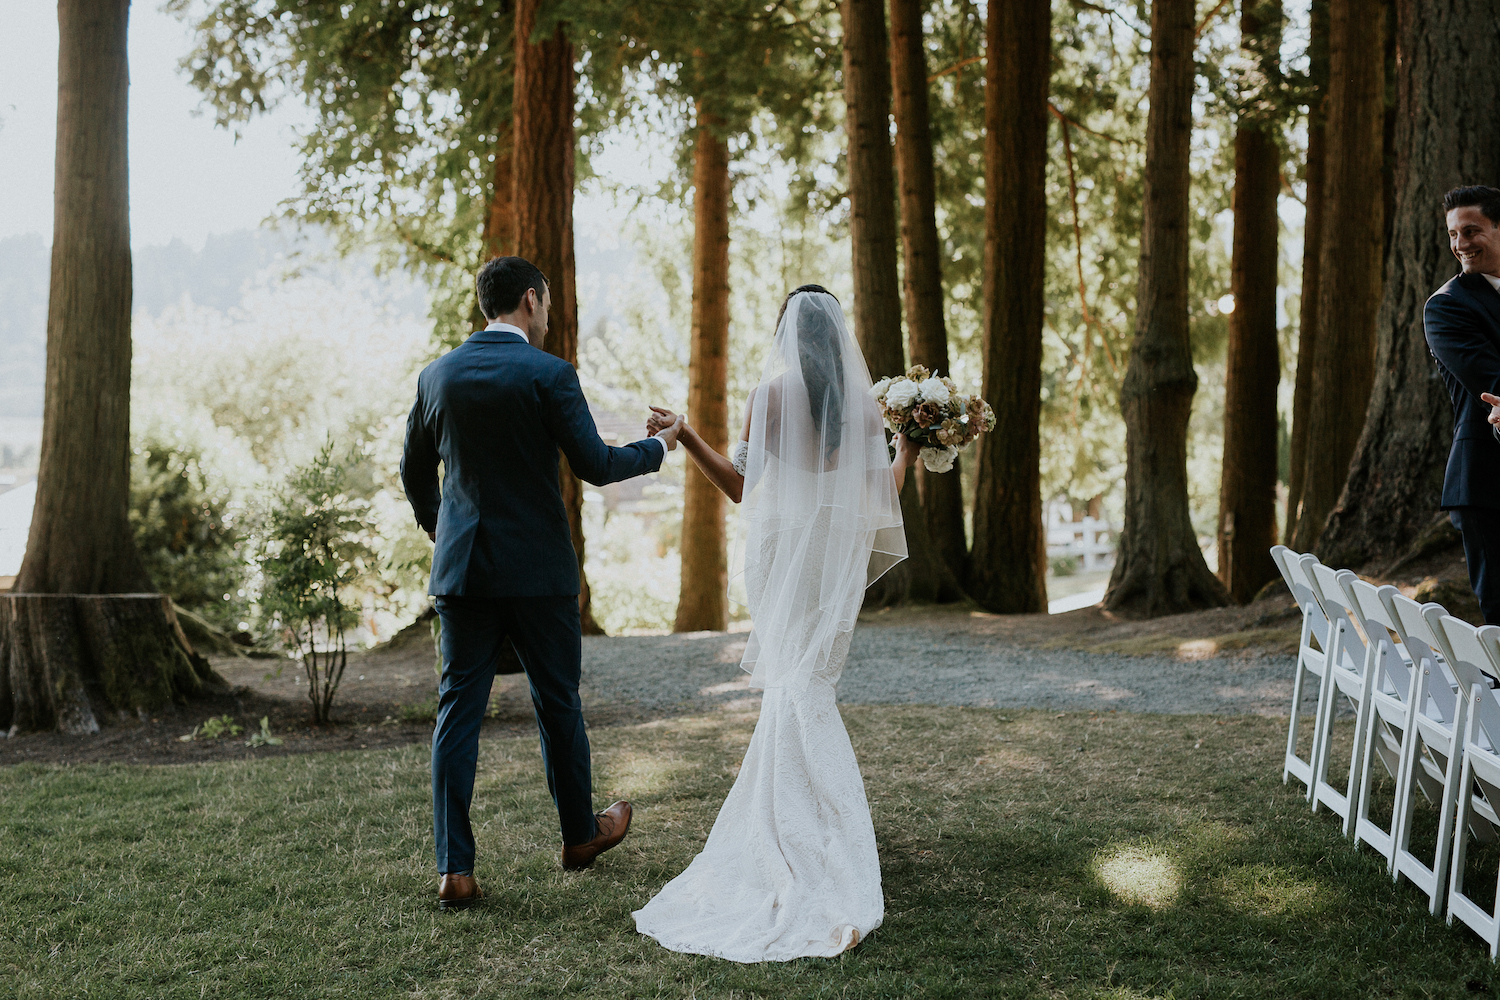 Wild Bloom Floral - Rachel Birkhofer Photography - Jessica and Phil - Real Wedding - Seattle 12.jpeg